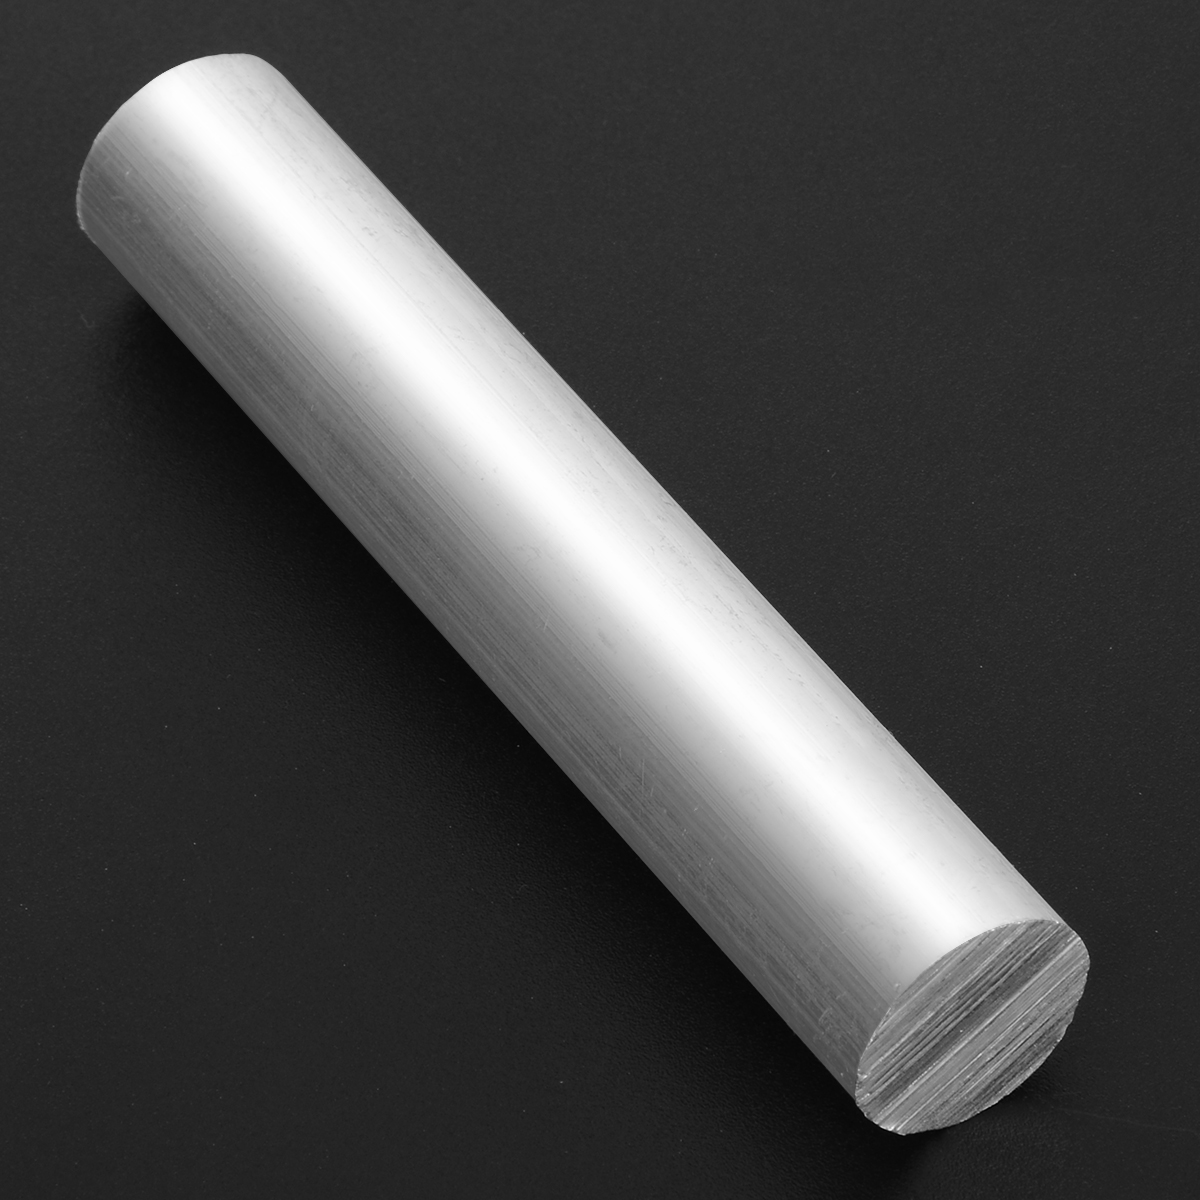 1PC 99.99/% Magnesium Metal Rod Mg 16mm x 9cm High Purity